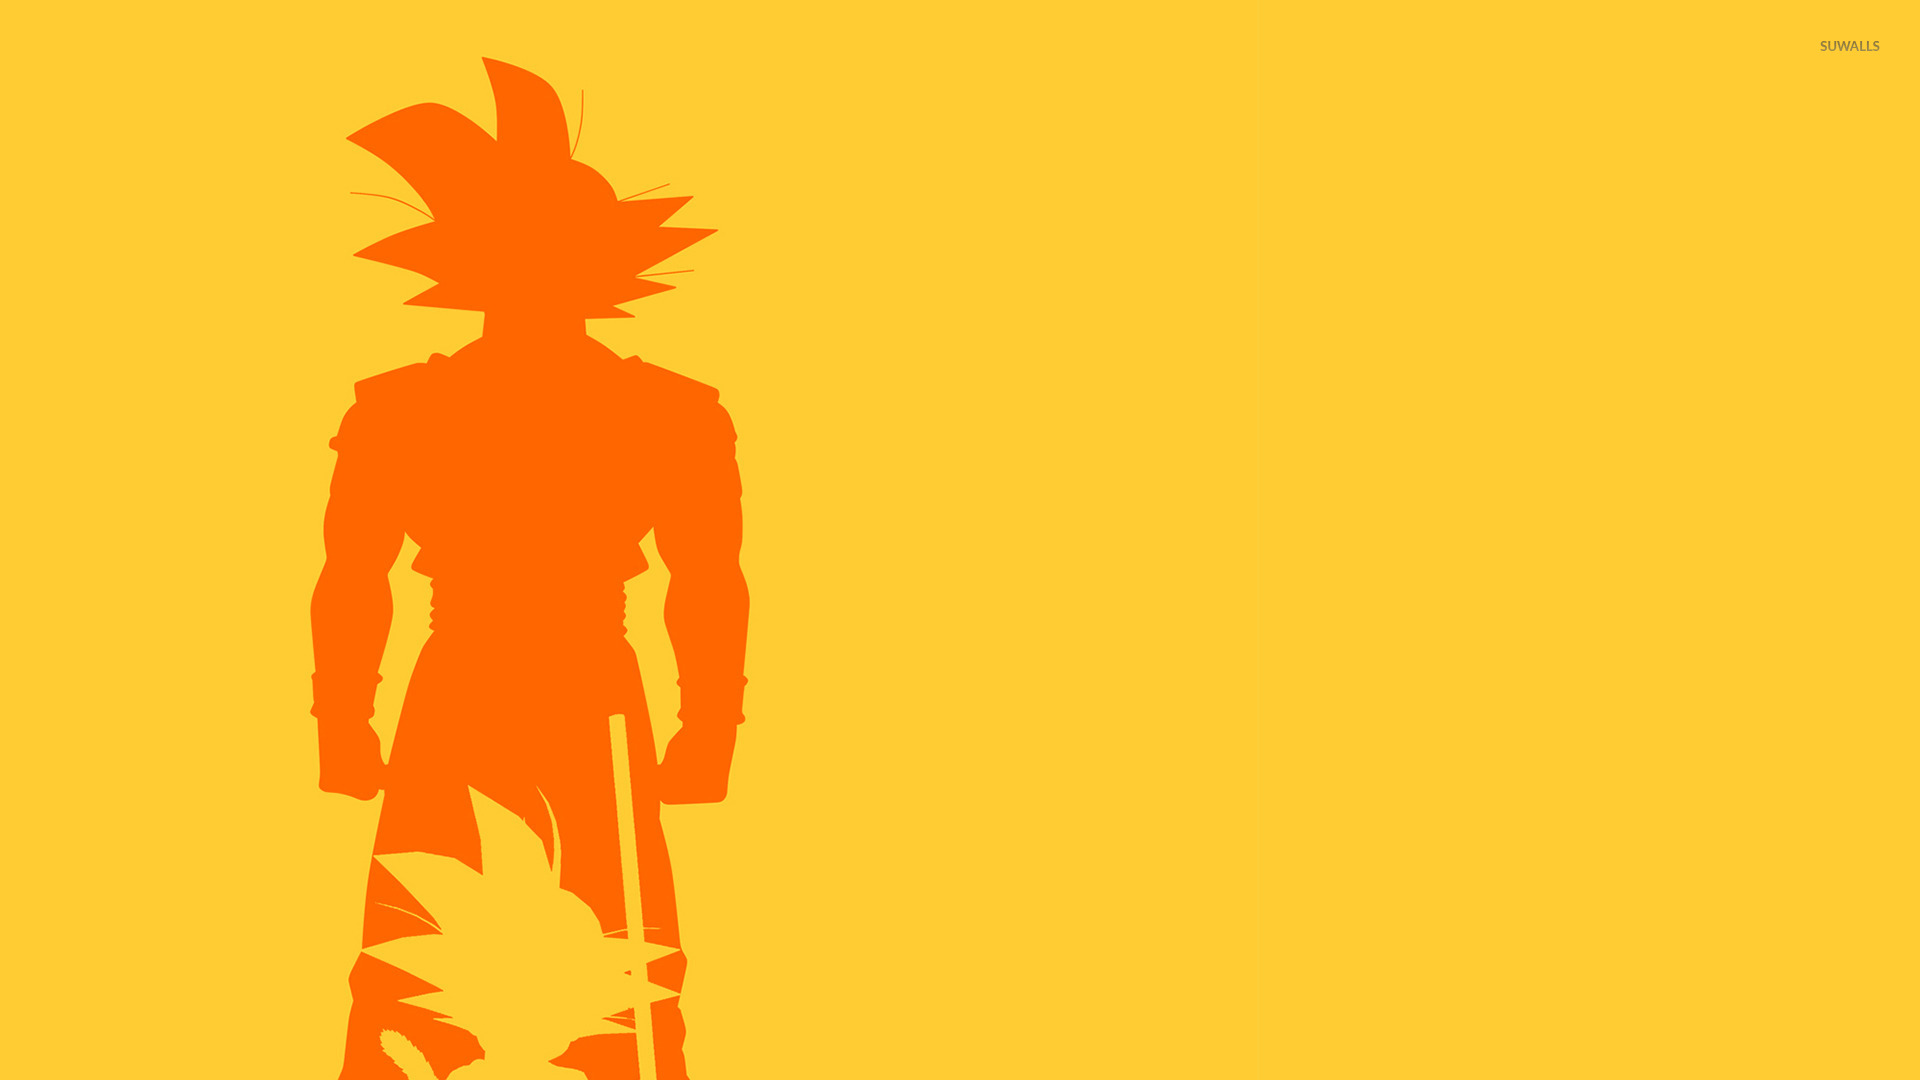 Goku - Dragon Ball Z [4] wallpaper - Anime wallpapers - #43828